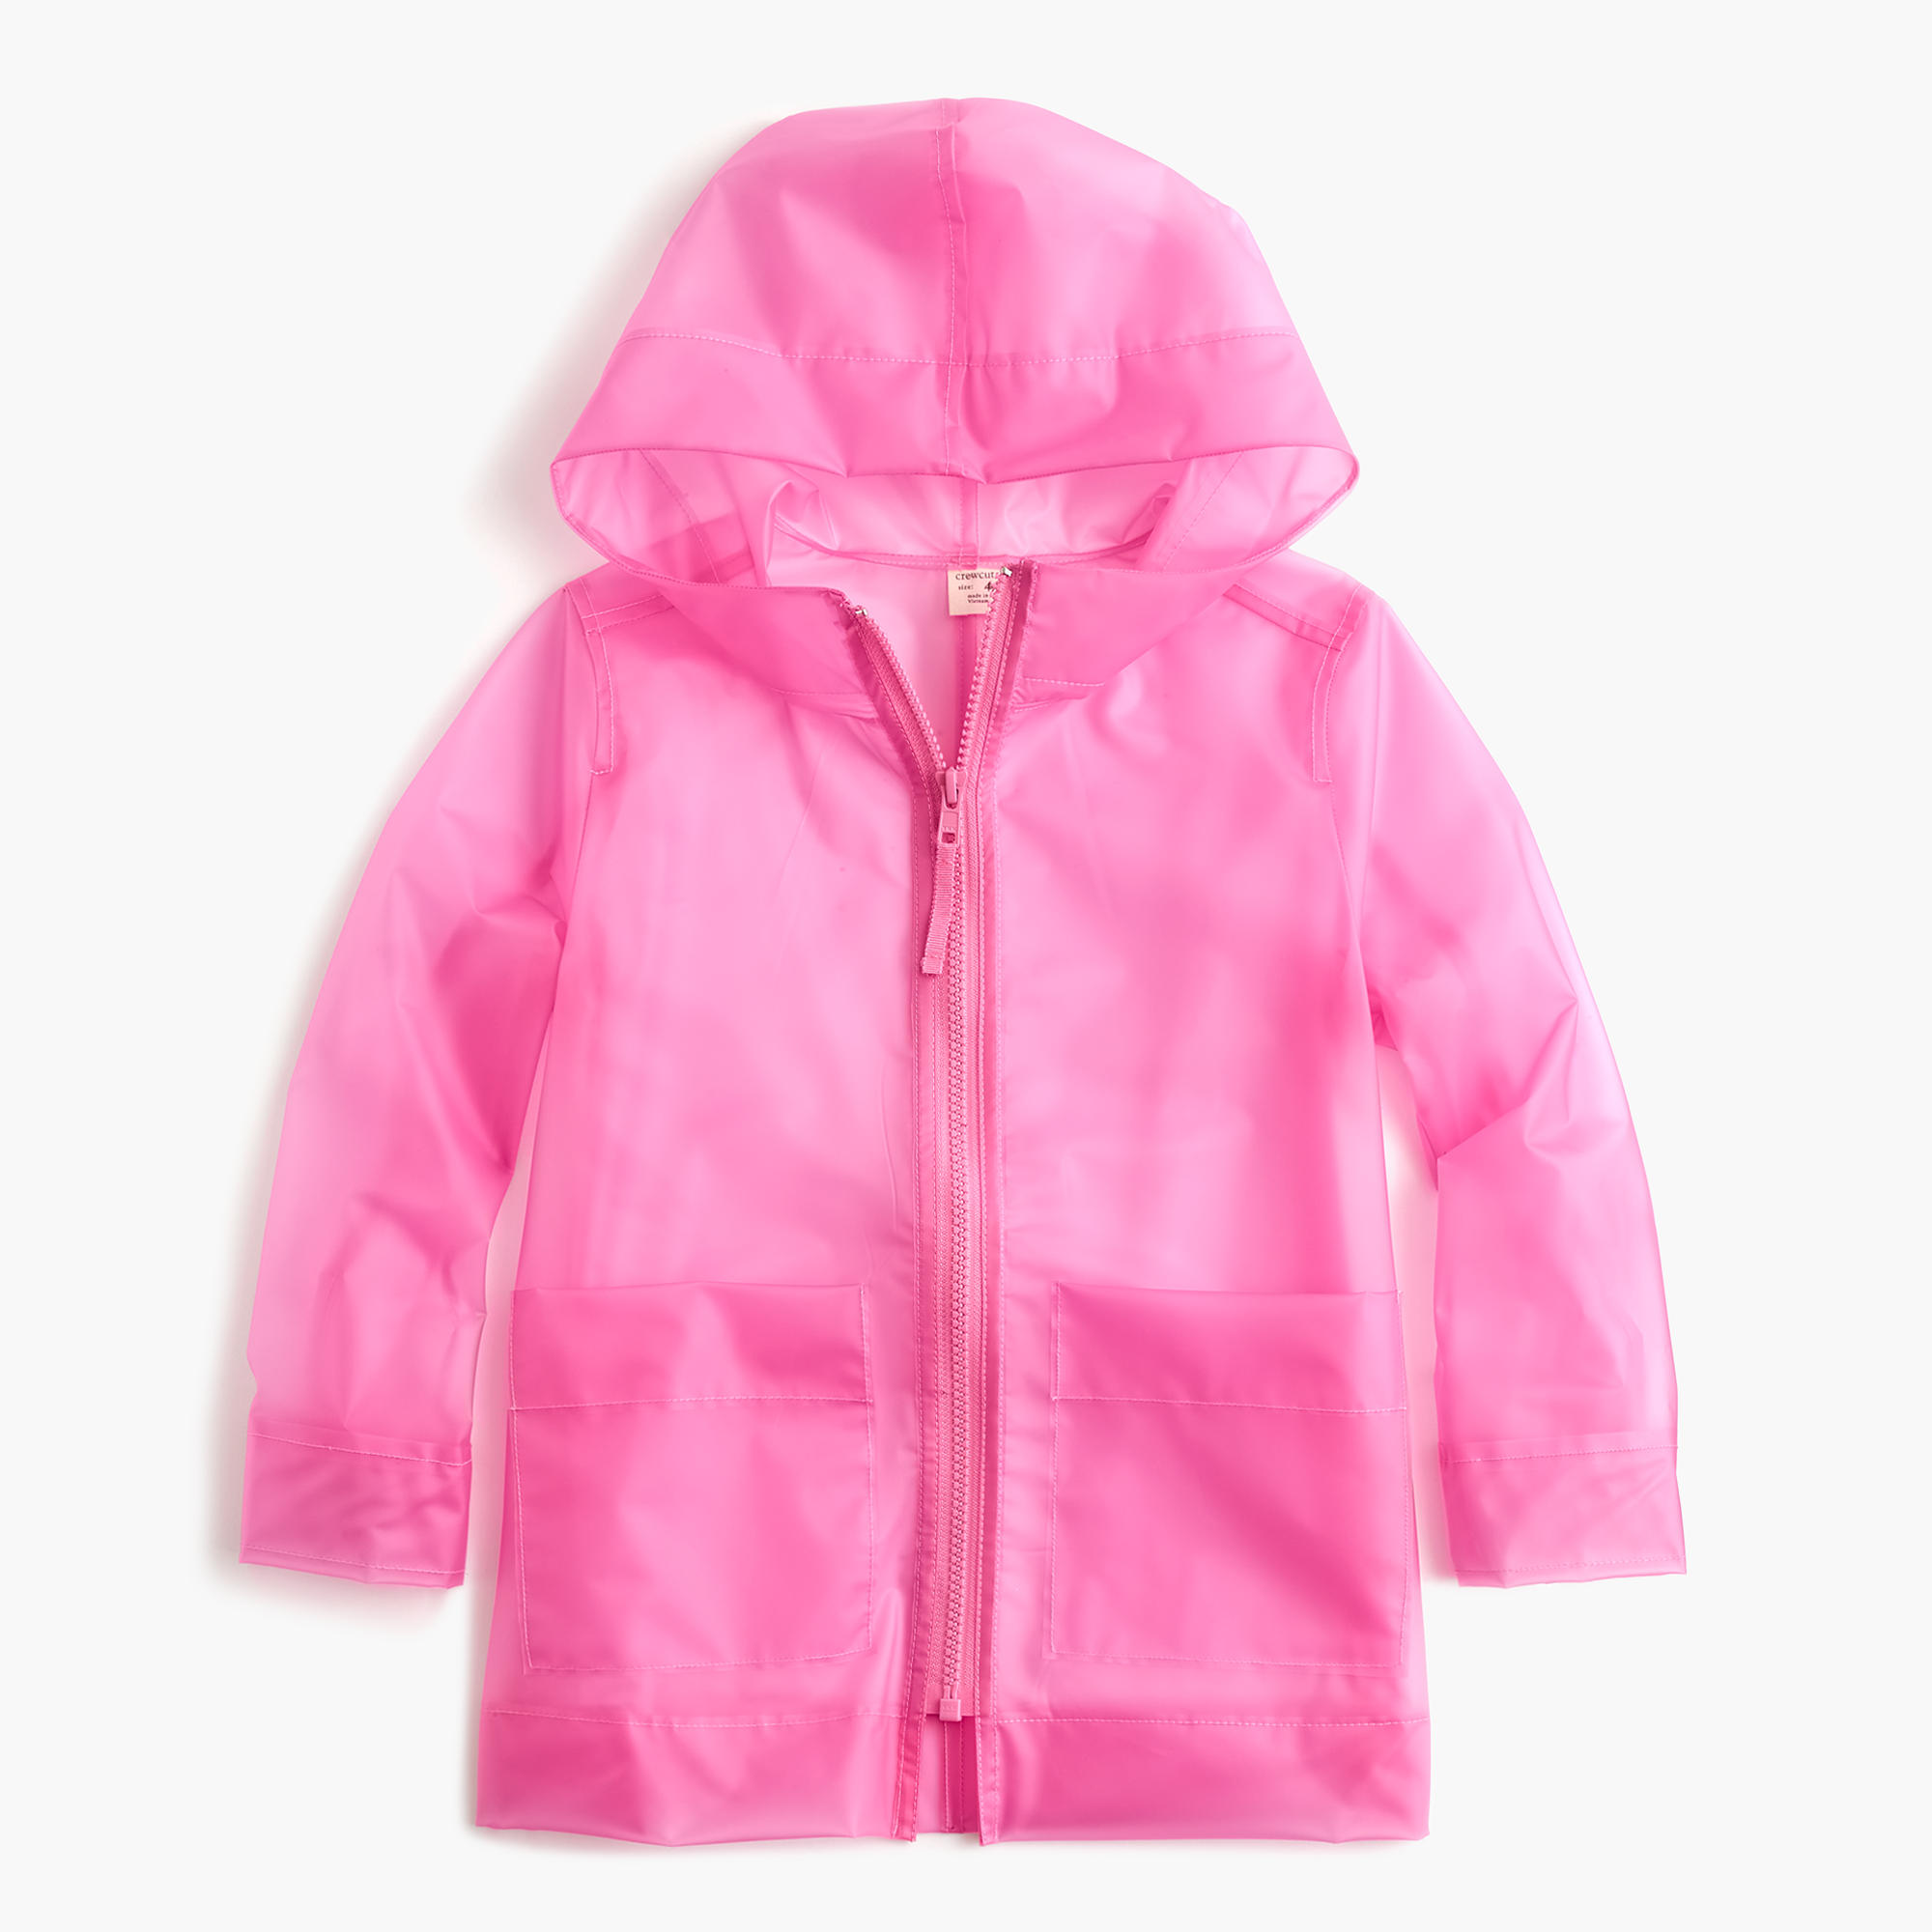 Girls' ruffle-back chino jacket : Girl lightweight and denim | J.Crew